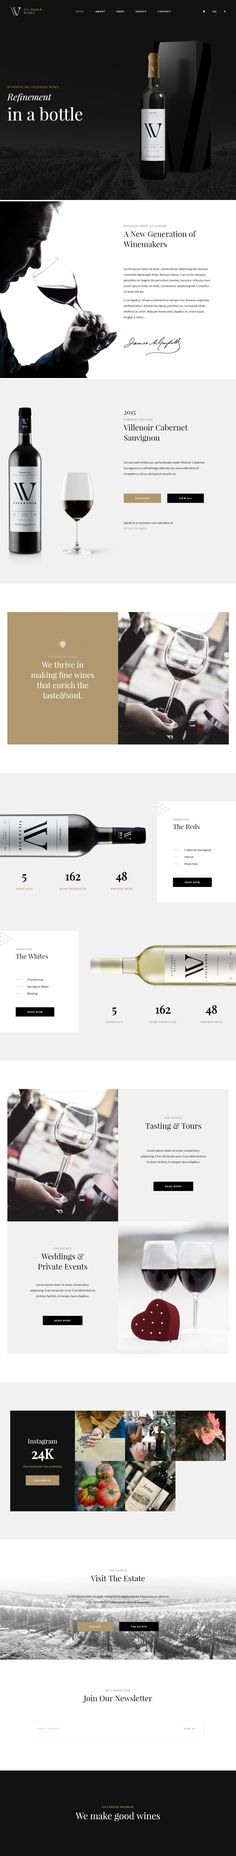 Villenoir is Premium Responsive Retina #WordPress Theme with WooCommerce.  If you like this #Winery Theme visit our handpicked list of best #Wine Web Sites Themes at: http://www.responsivemiracle.com/best-responsive-wordpress-wine-theme/